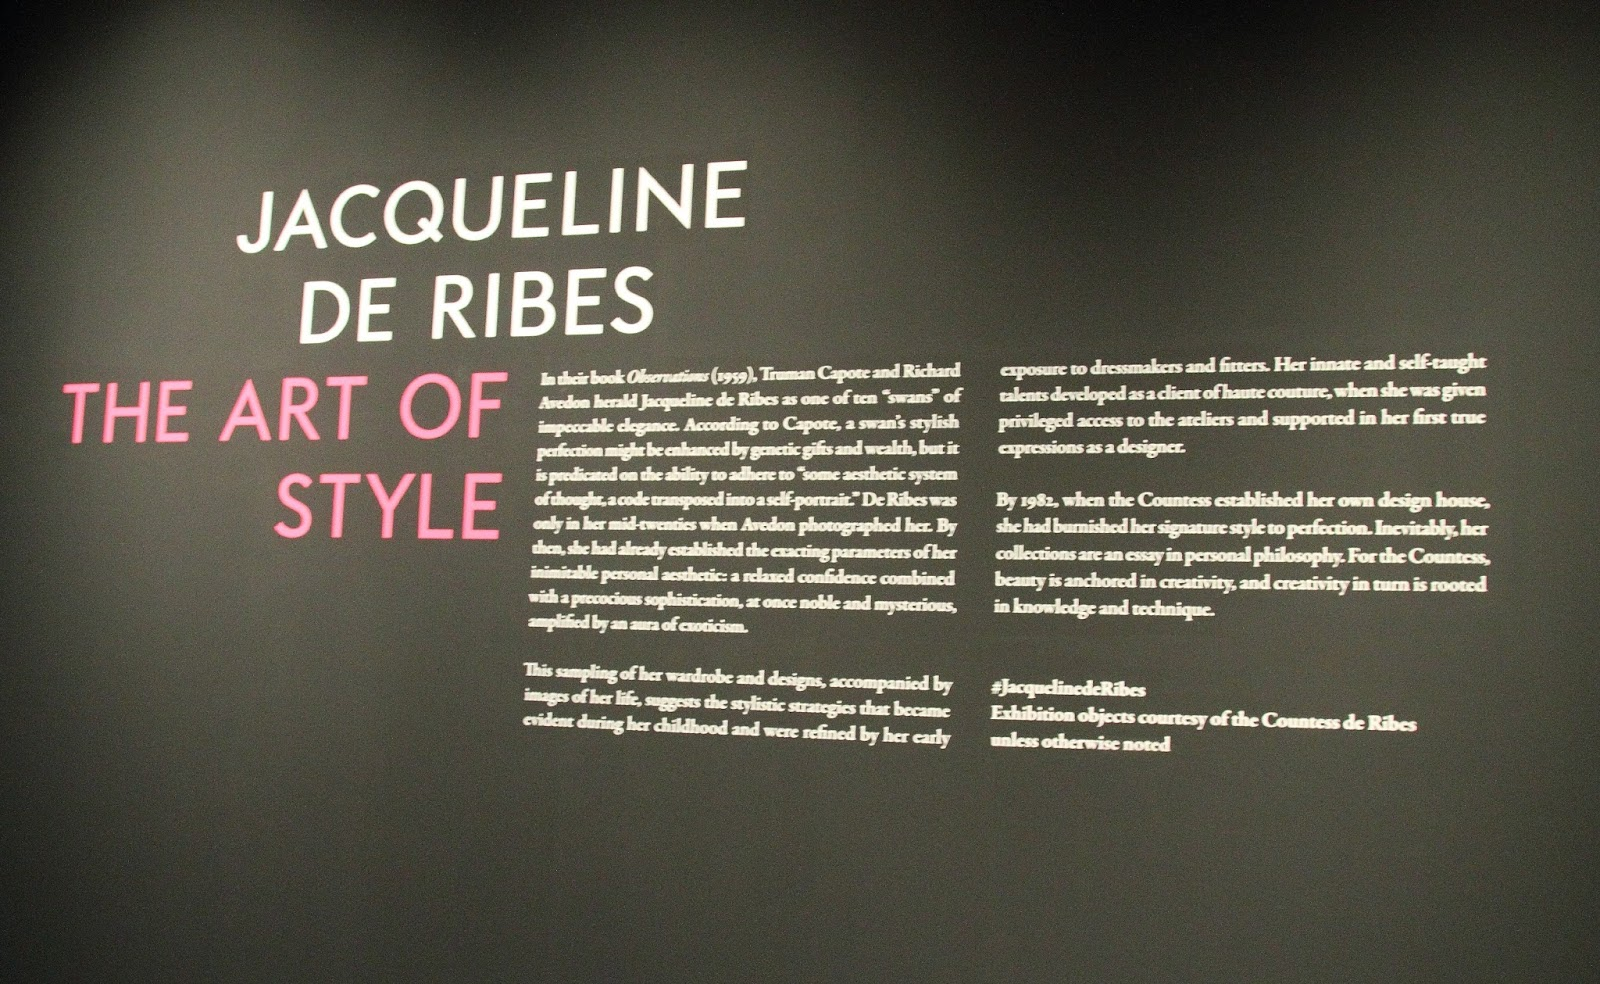 Jacqueline De Ribes Quotes: Jacqueline De Ribes Quotes From The Art Of Style